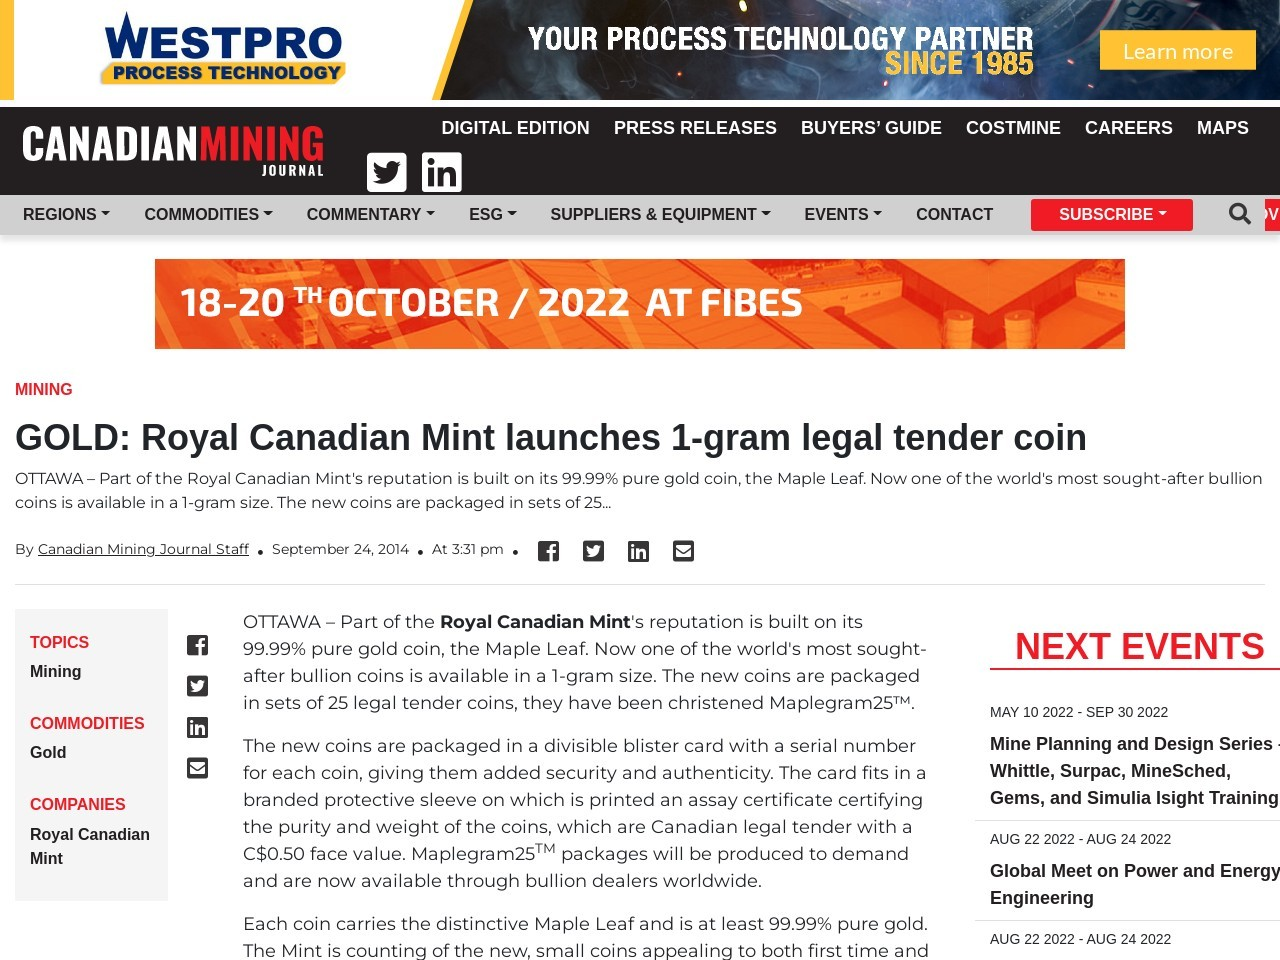 GOLD: Royal Canadian Mint launches 1-gram legal tender coin